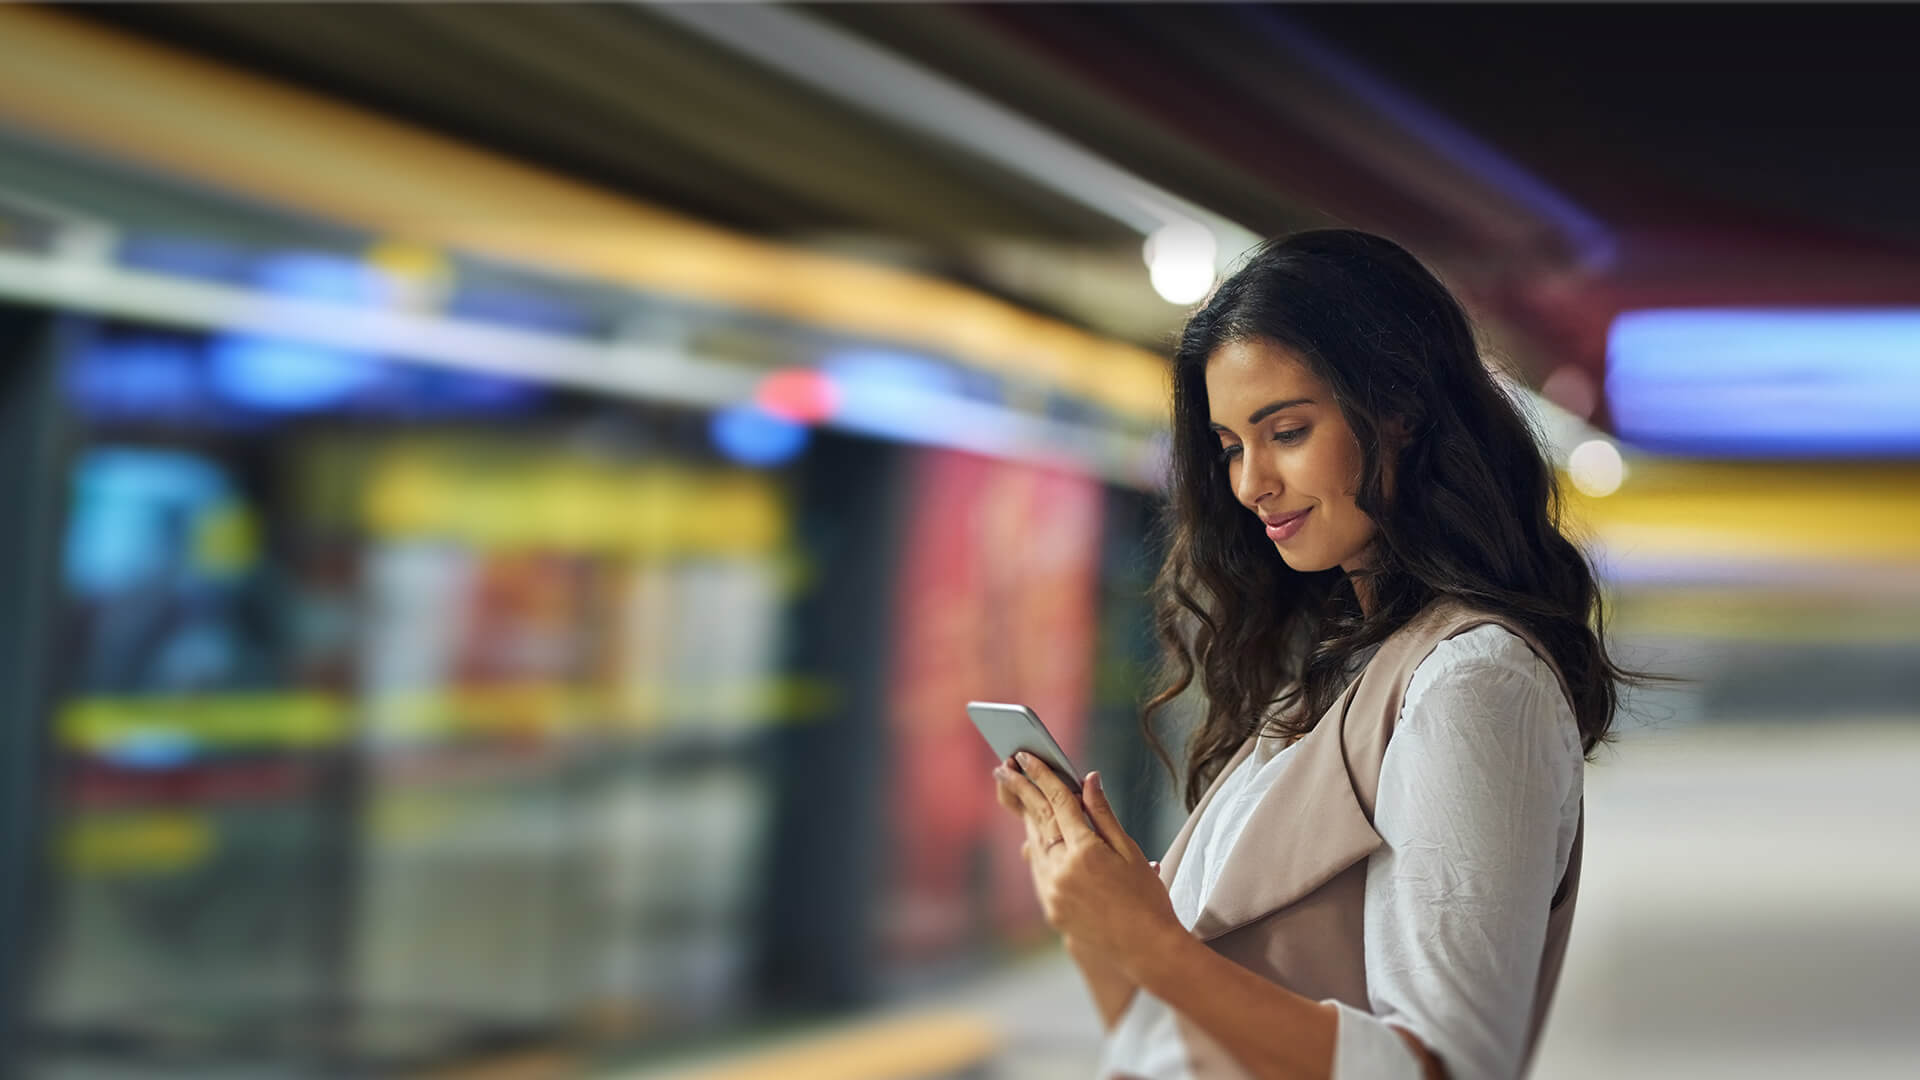 Indian single woman dating online on eharmony while waiting for the metro in Canada